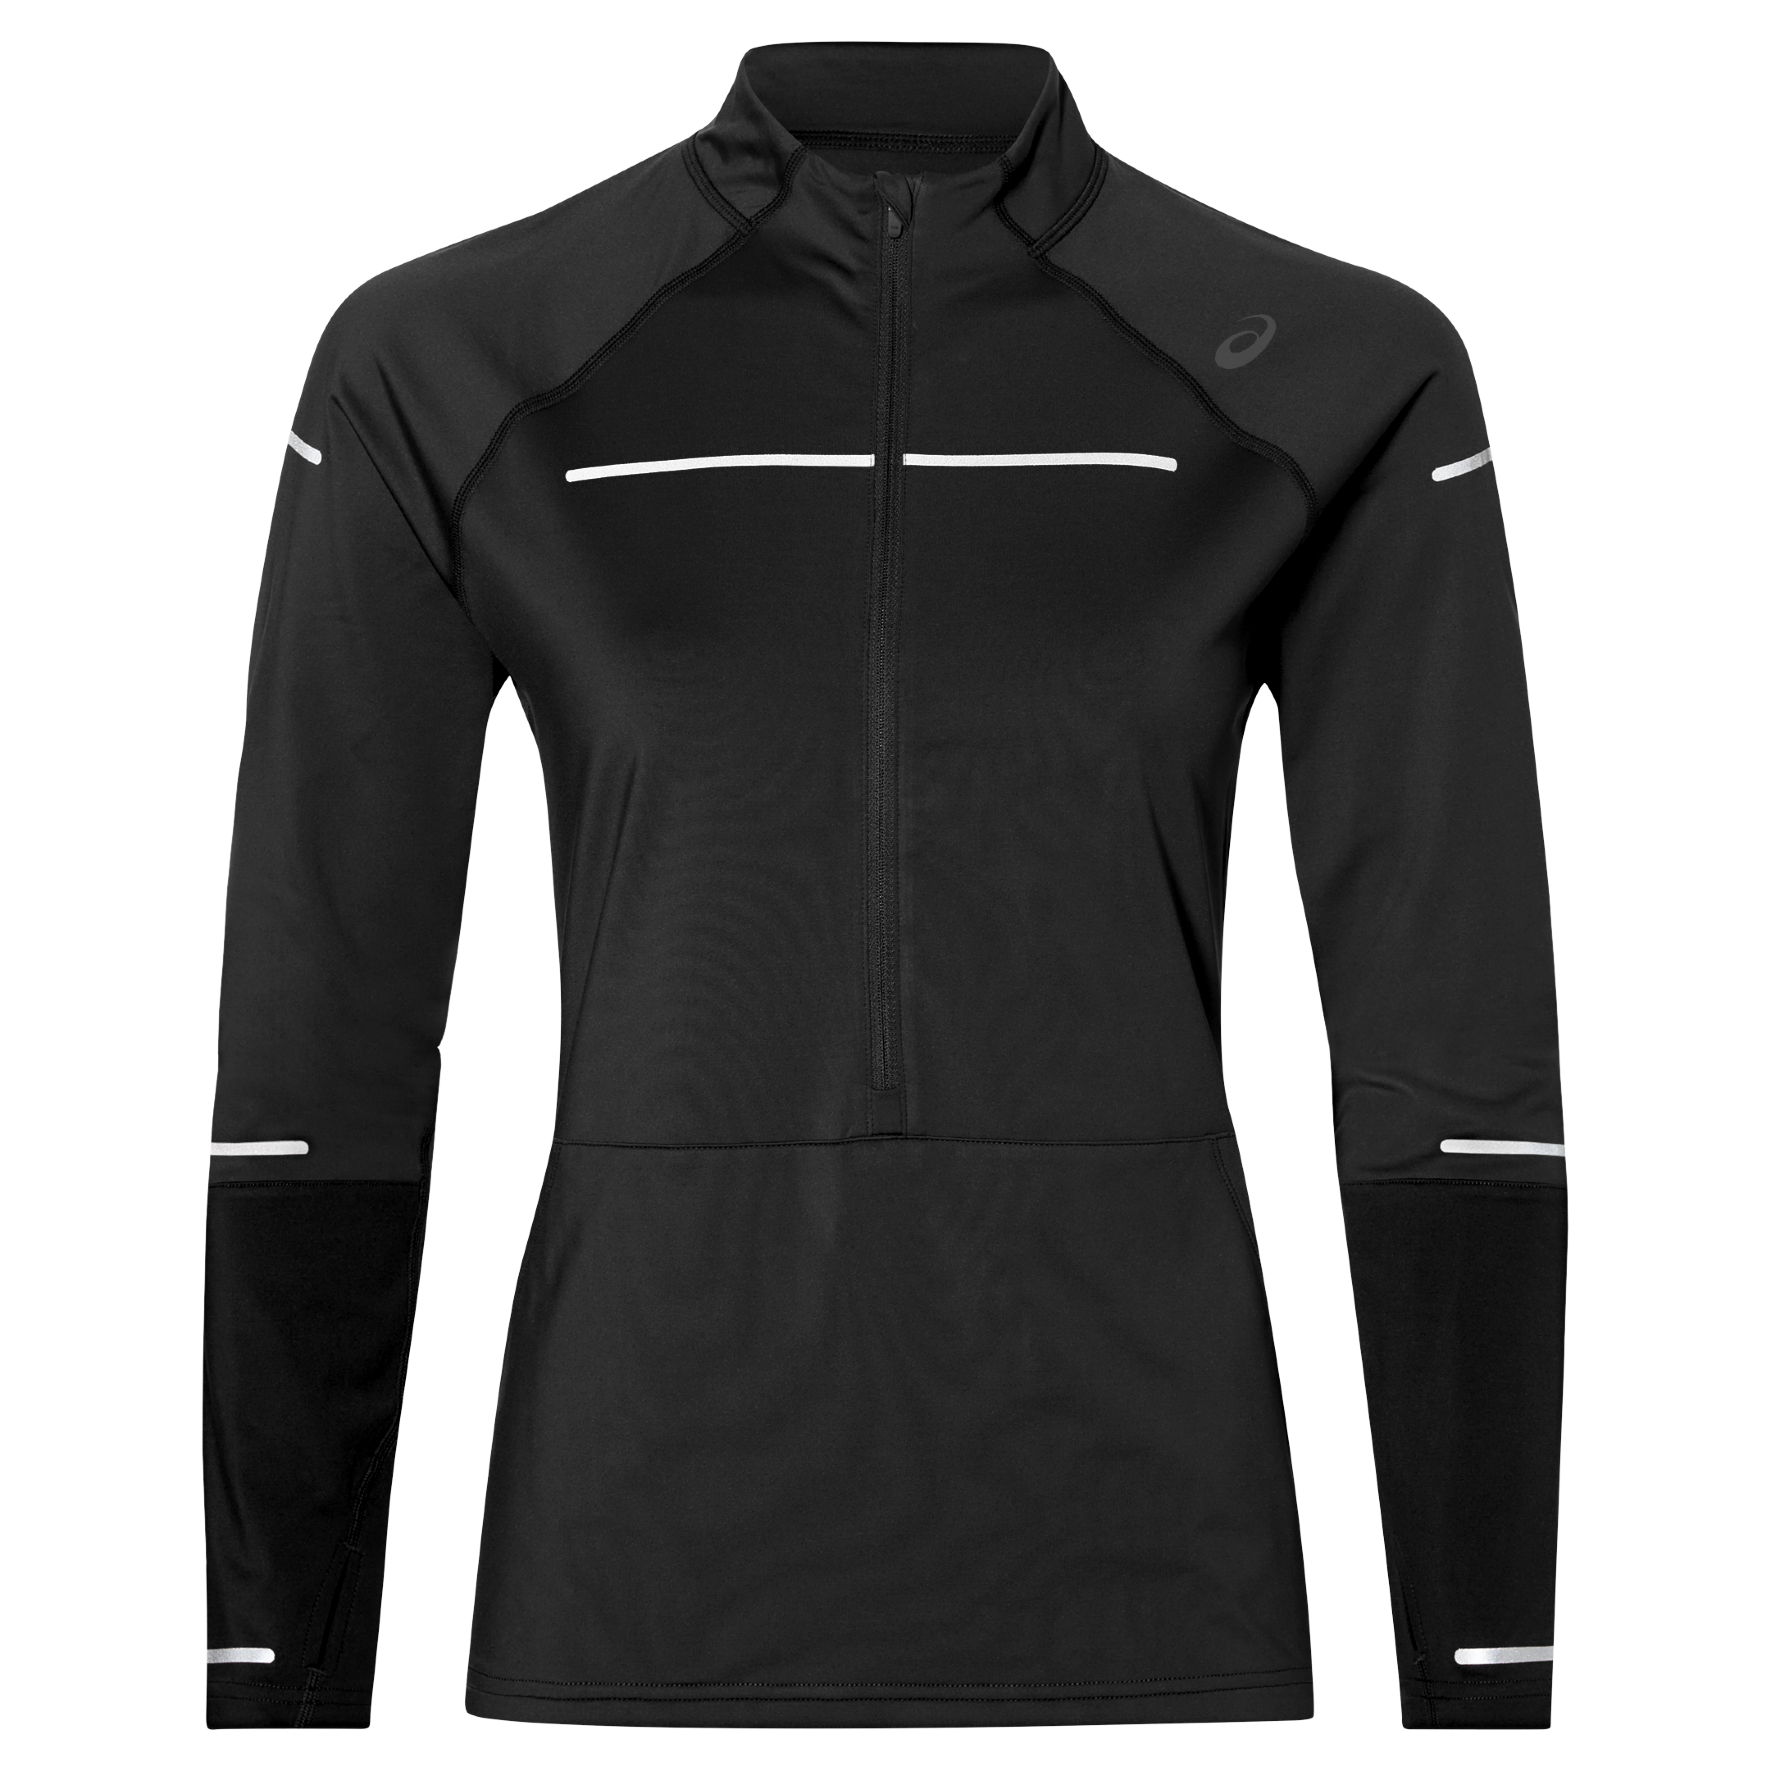 e882057d3fd1 Wiggle | Asics Women's Lite-Show Winter LS 1/2 Zip Top | Long Sleeve  Running Tops